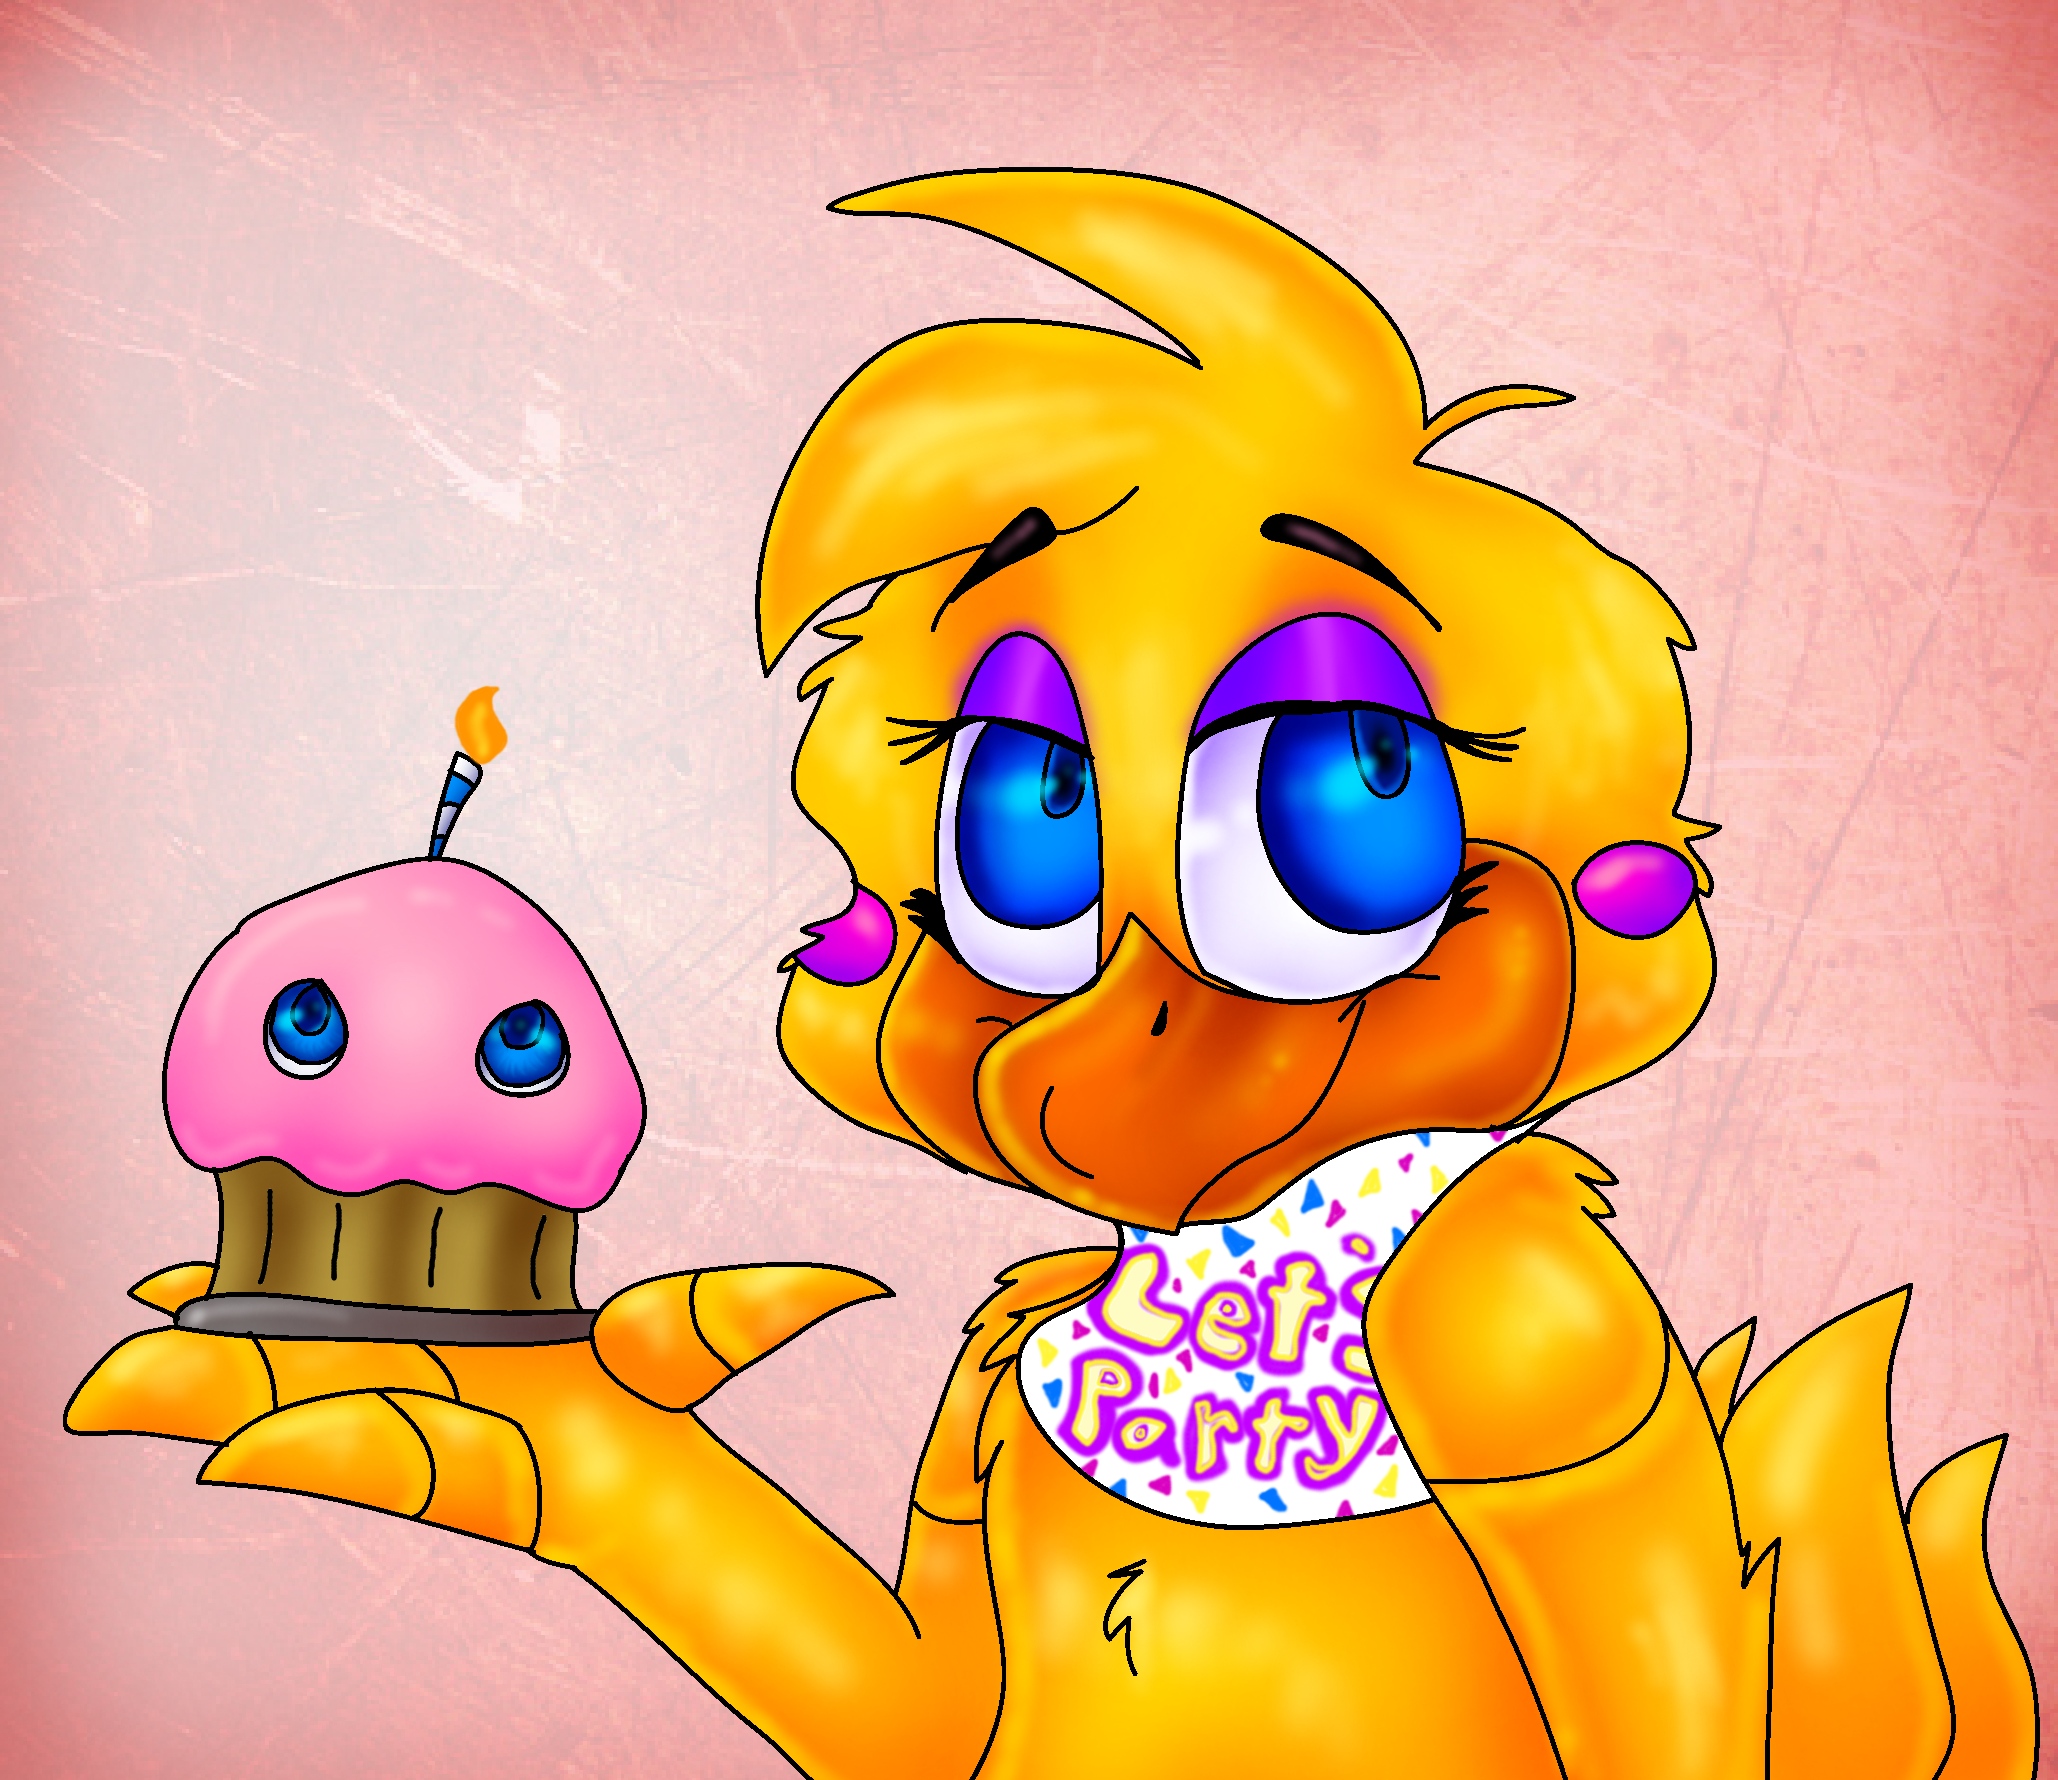 Chica Toy Chica Favourites By Goldenafro On Deviantart: Chica The Chicken- Fan Art Favourites By Freindly-Fazbear